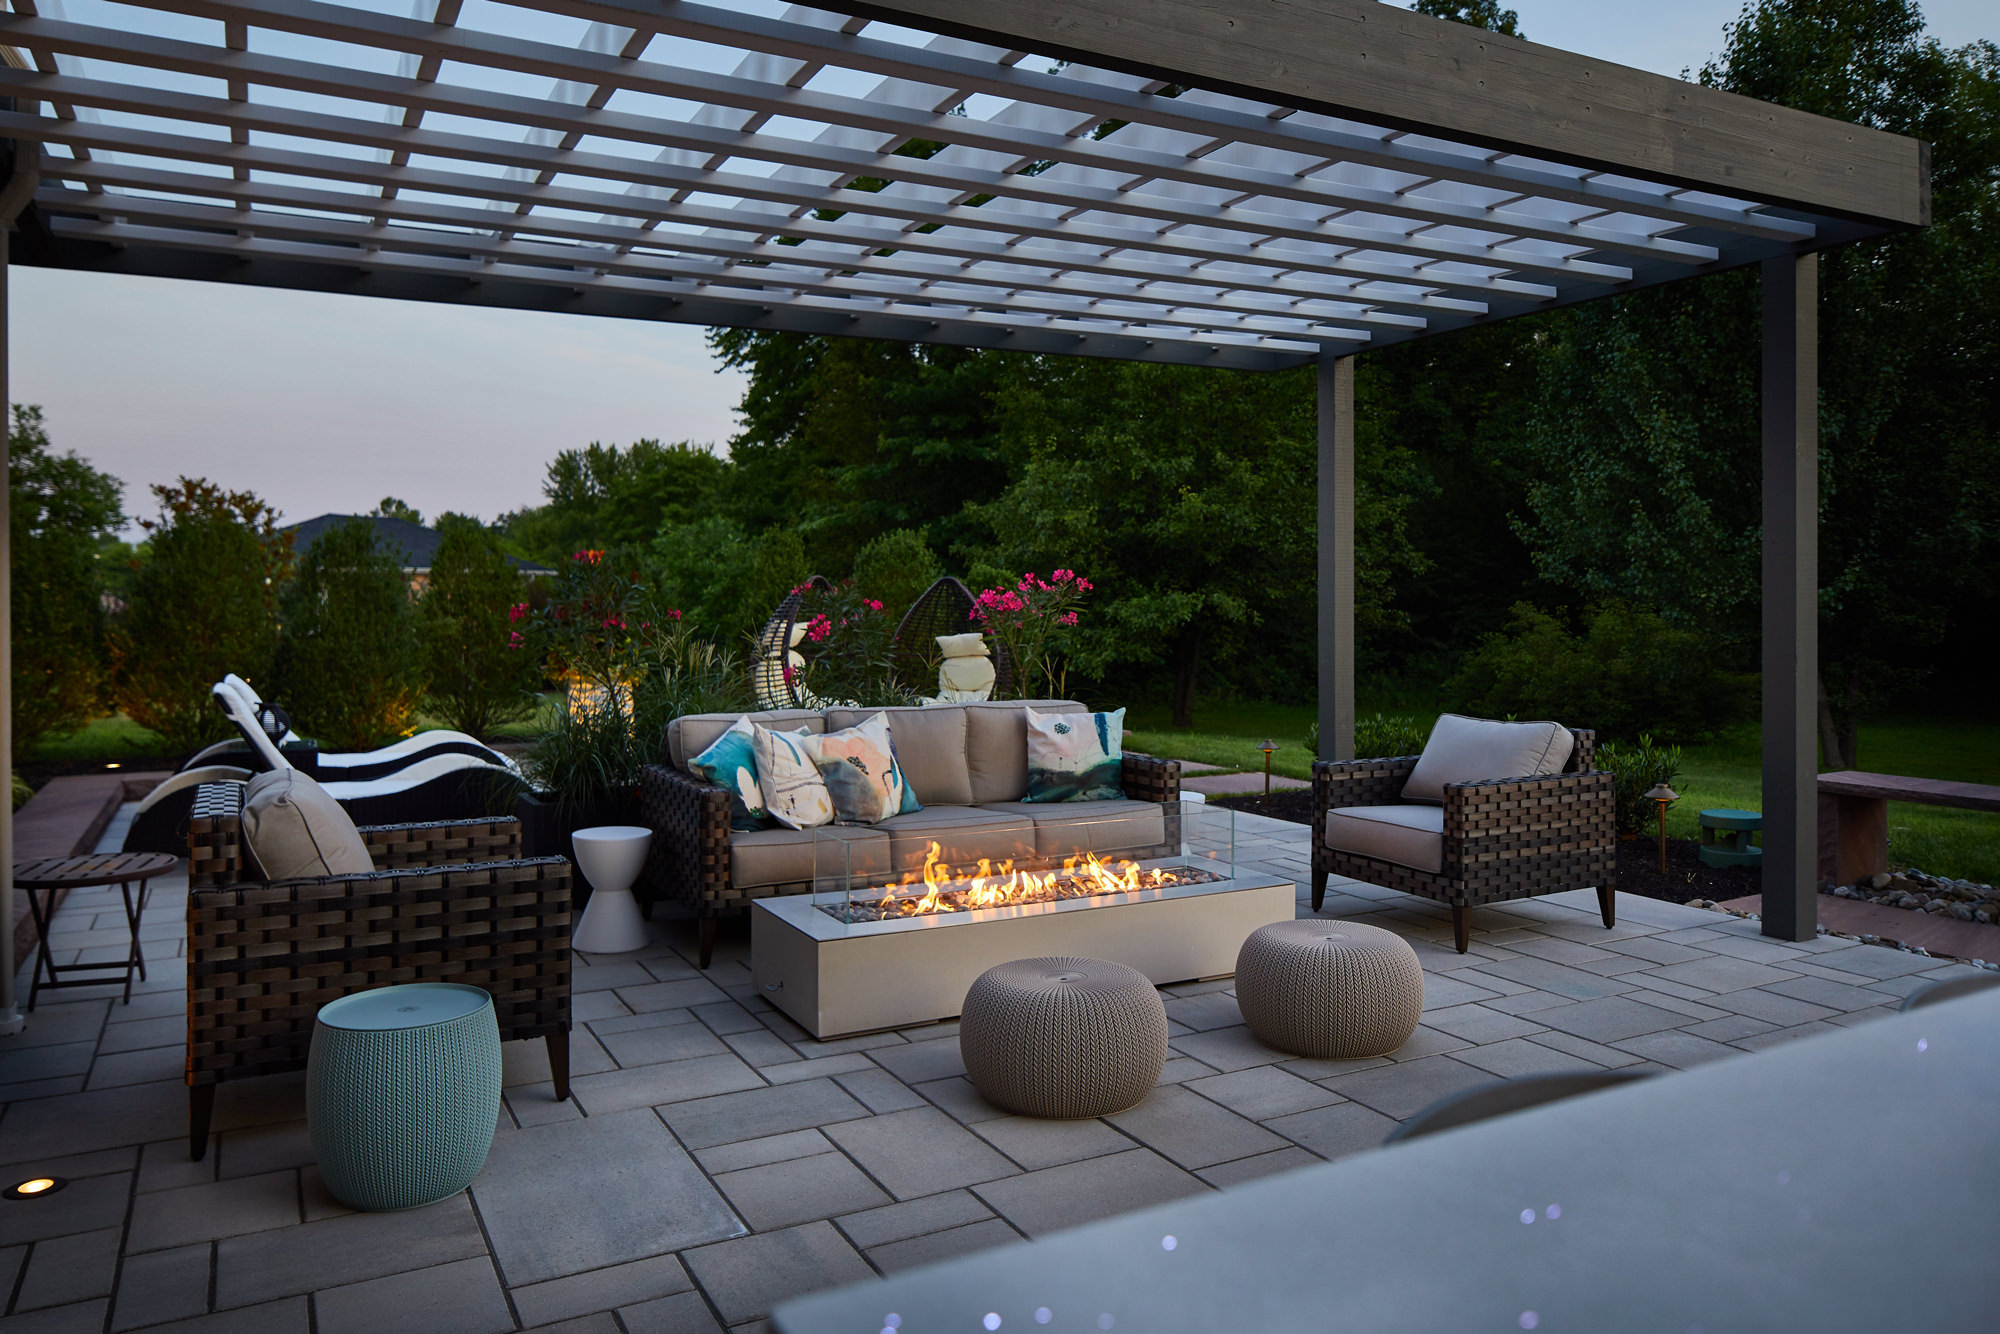 The lower patio lounge area is so beautiful and relaxing, imagine warming up by the fire listening to the nearby custom water feature…